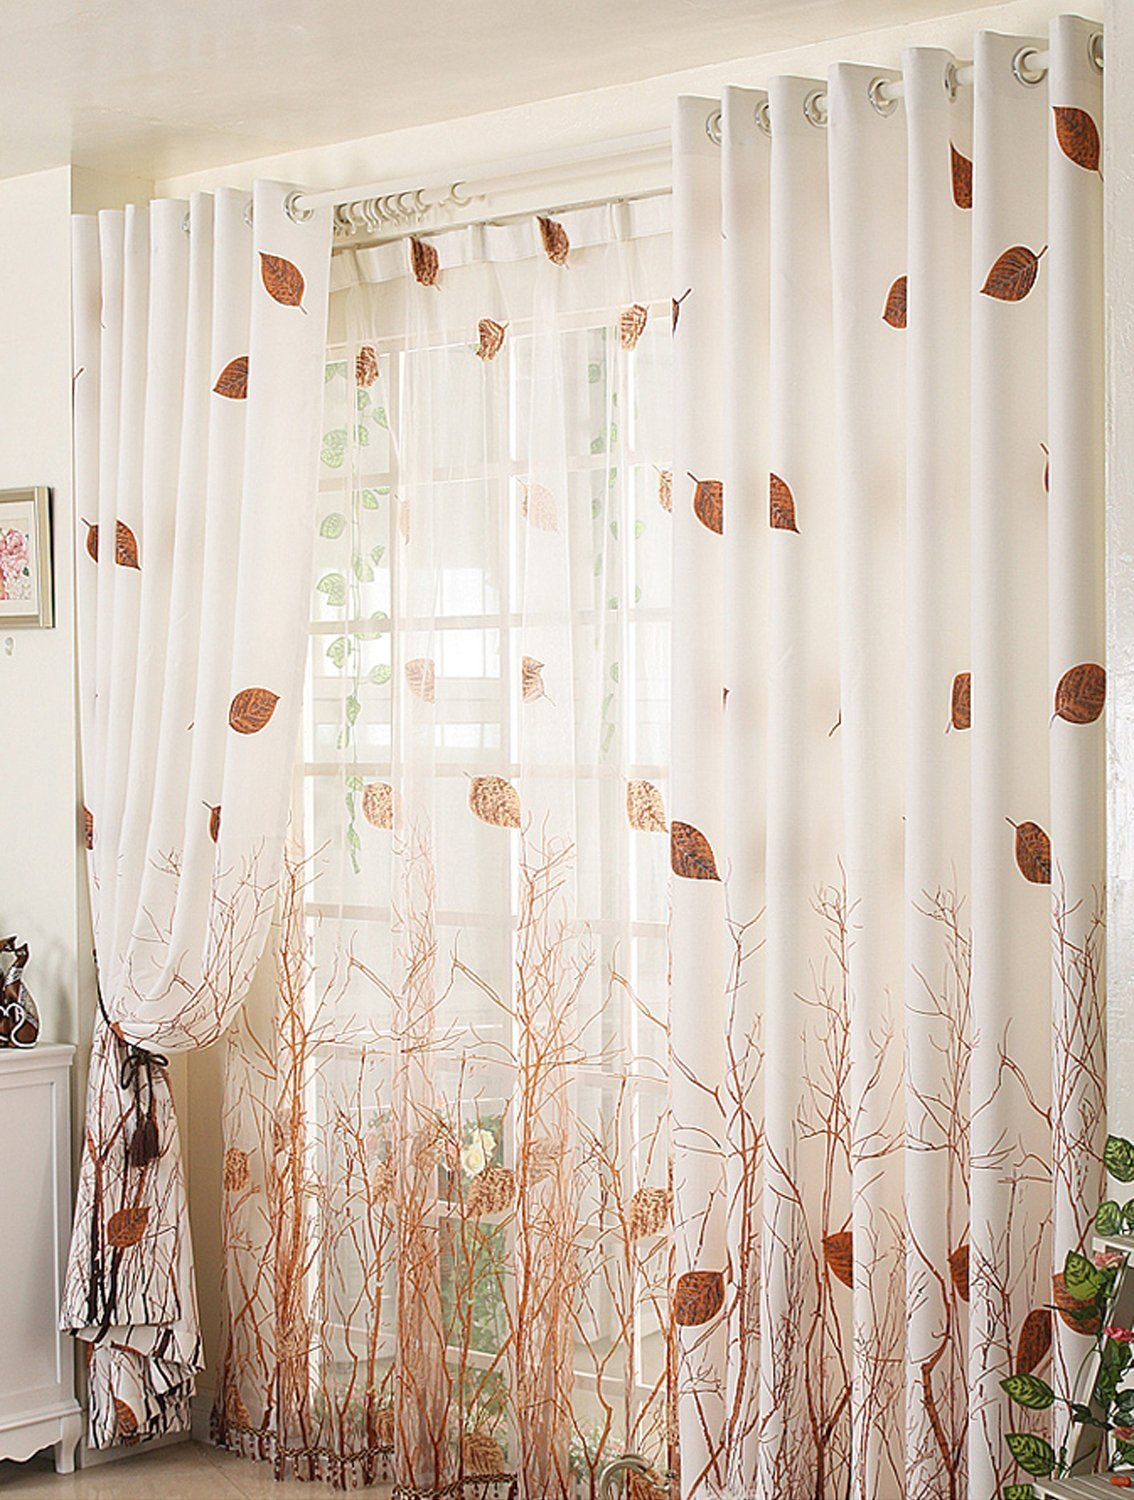 Attrayant Amazon.com: ElleWeiDeco Modern Autumn Leaf Tree Branch Sheer Window Curtain/ Drape/panel (Brown, 52Wx84L): Kitchen U0026 Dining